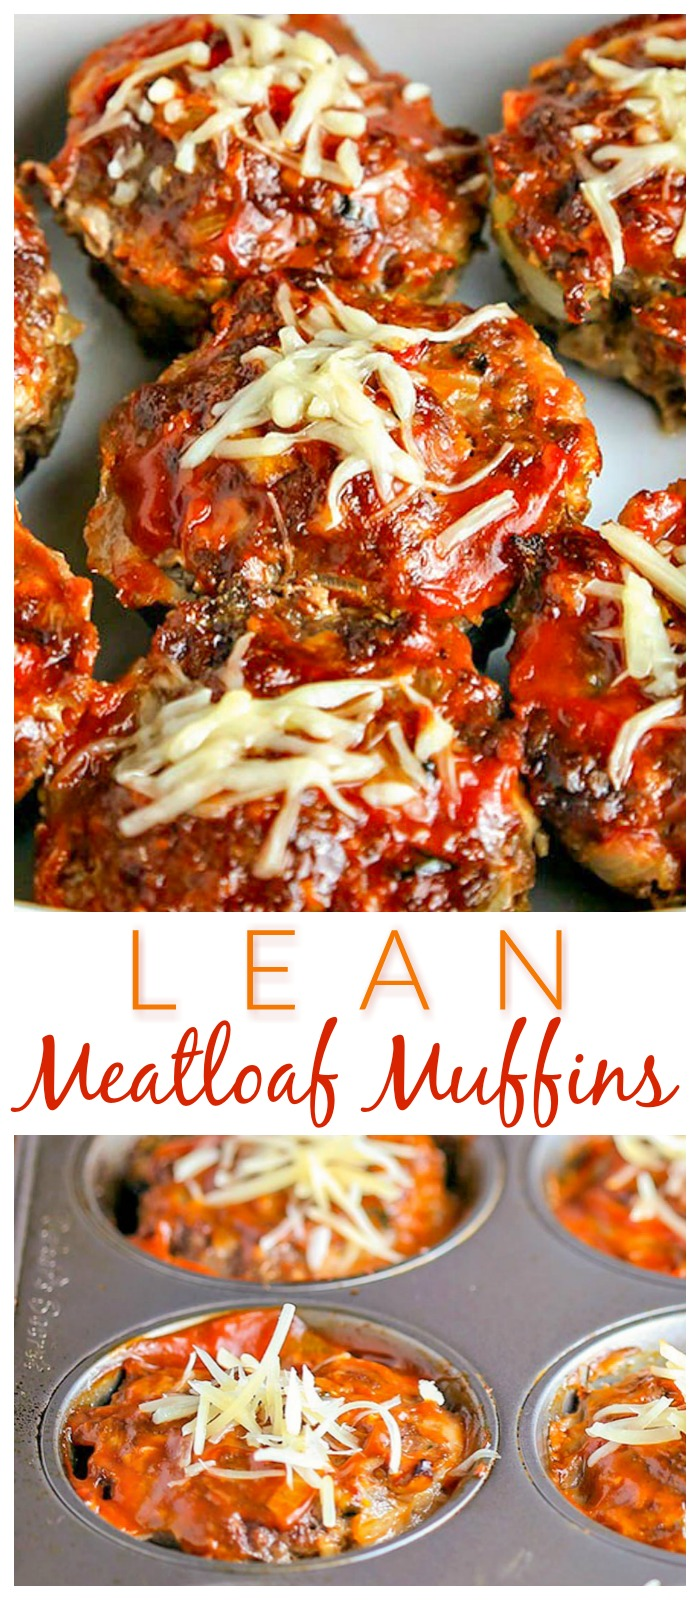 These cute and tasty Meatloaf Muffins are ready in under an hour and are made with lean ground beef! #beef #meatloaf #muffintin